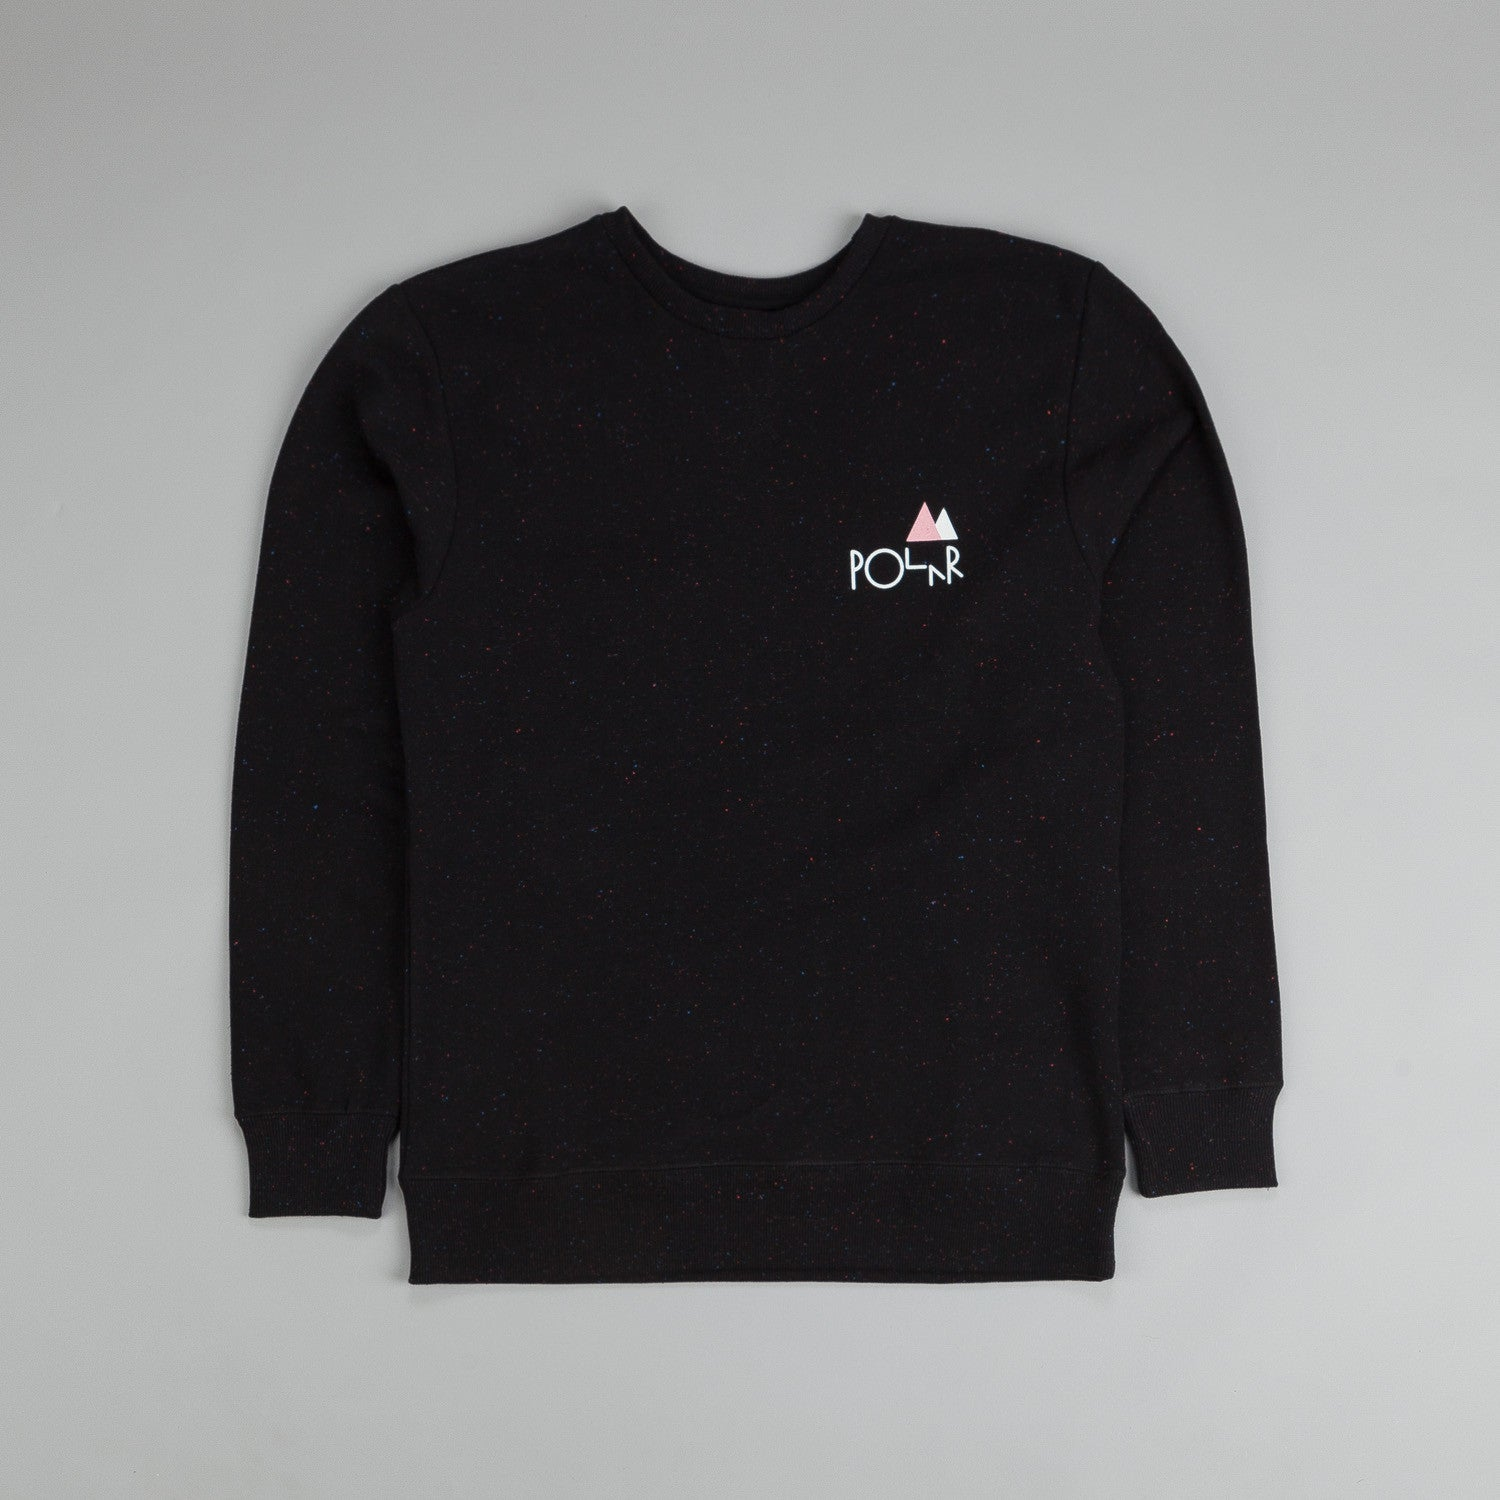 Polar Wallie & No Comply Sweatshirt Black / White